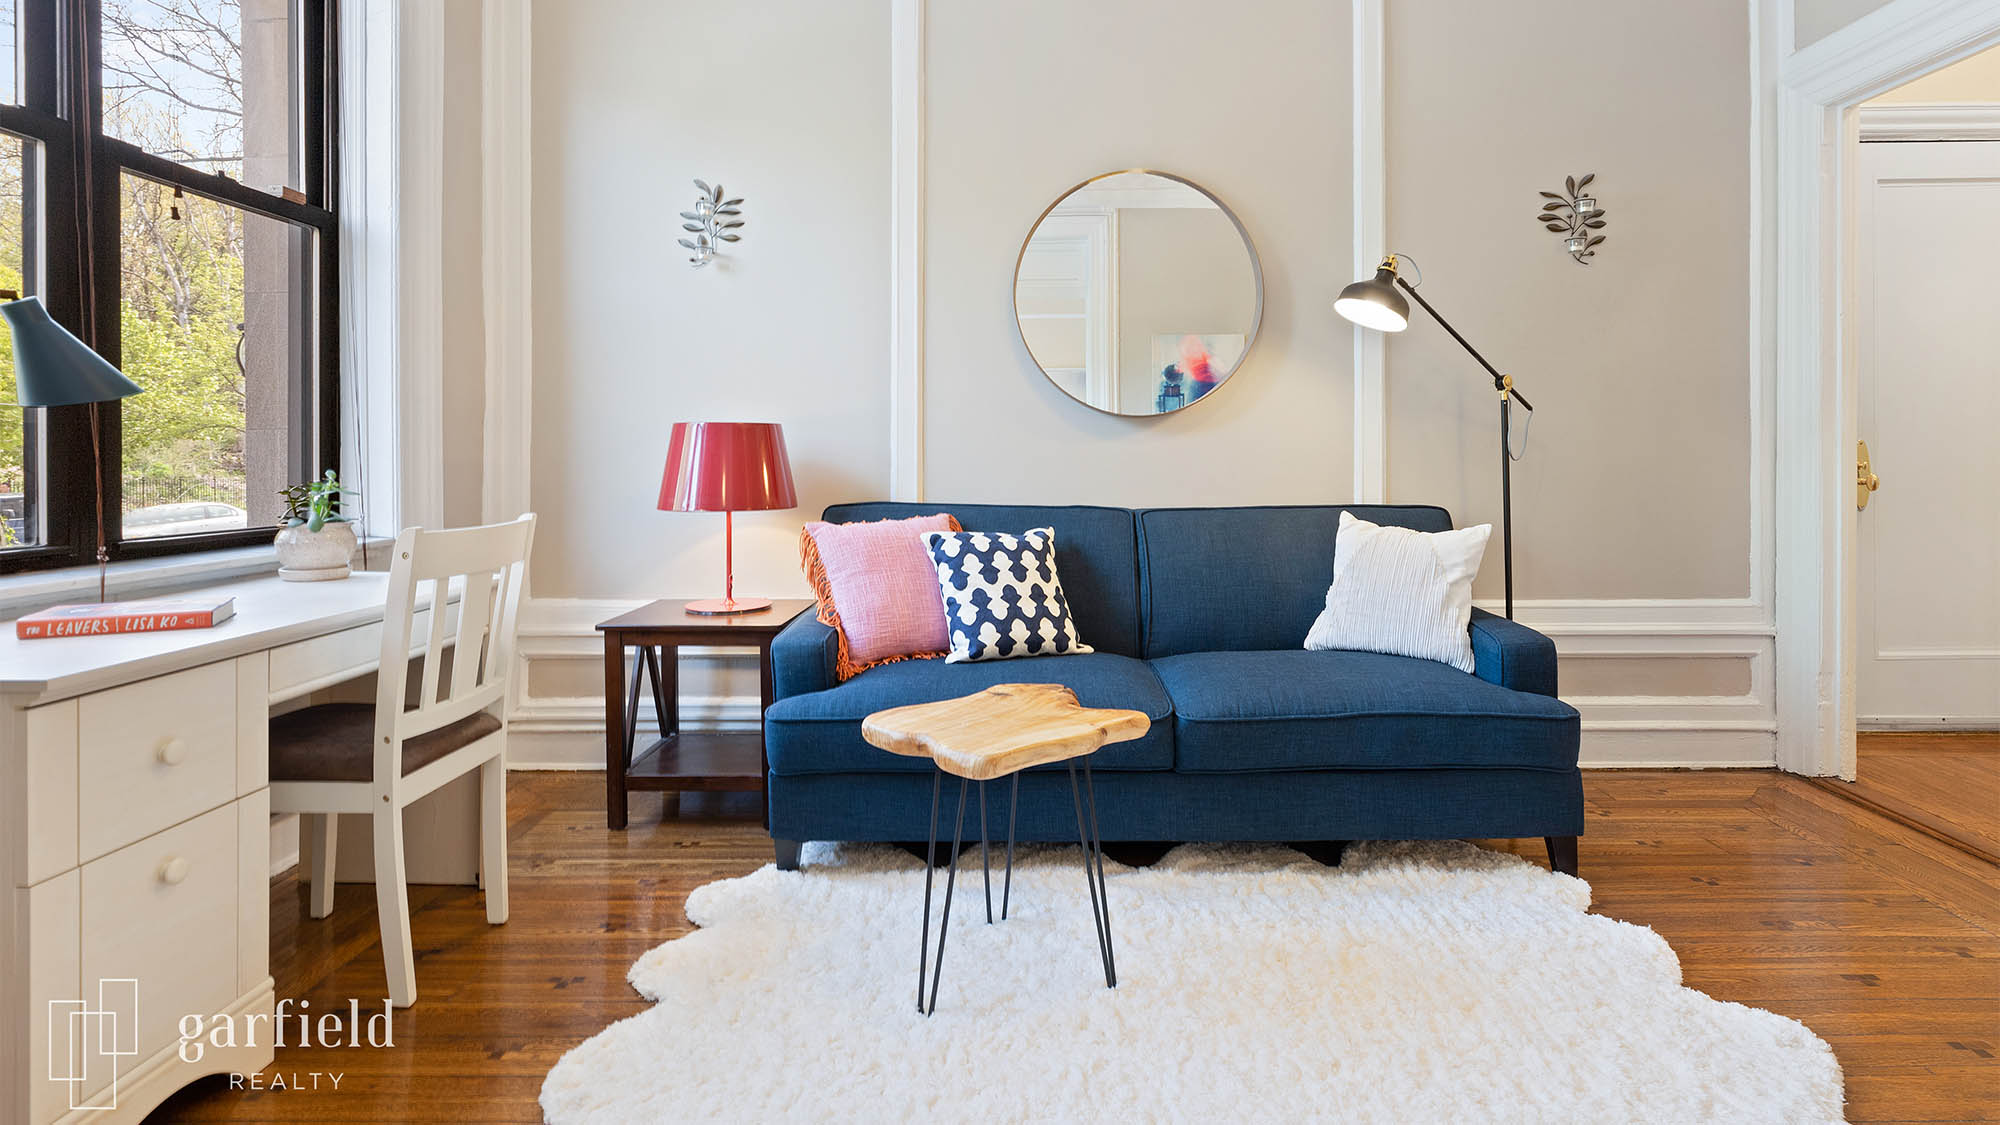 Staged living room with blue couch and modern decorative pillows with floor lamp to the right and coffee table to the left with red lamp and white desk and chair to the left against a window with white fur area rug and small wood table